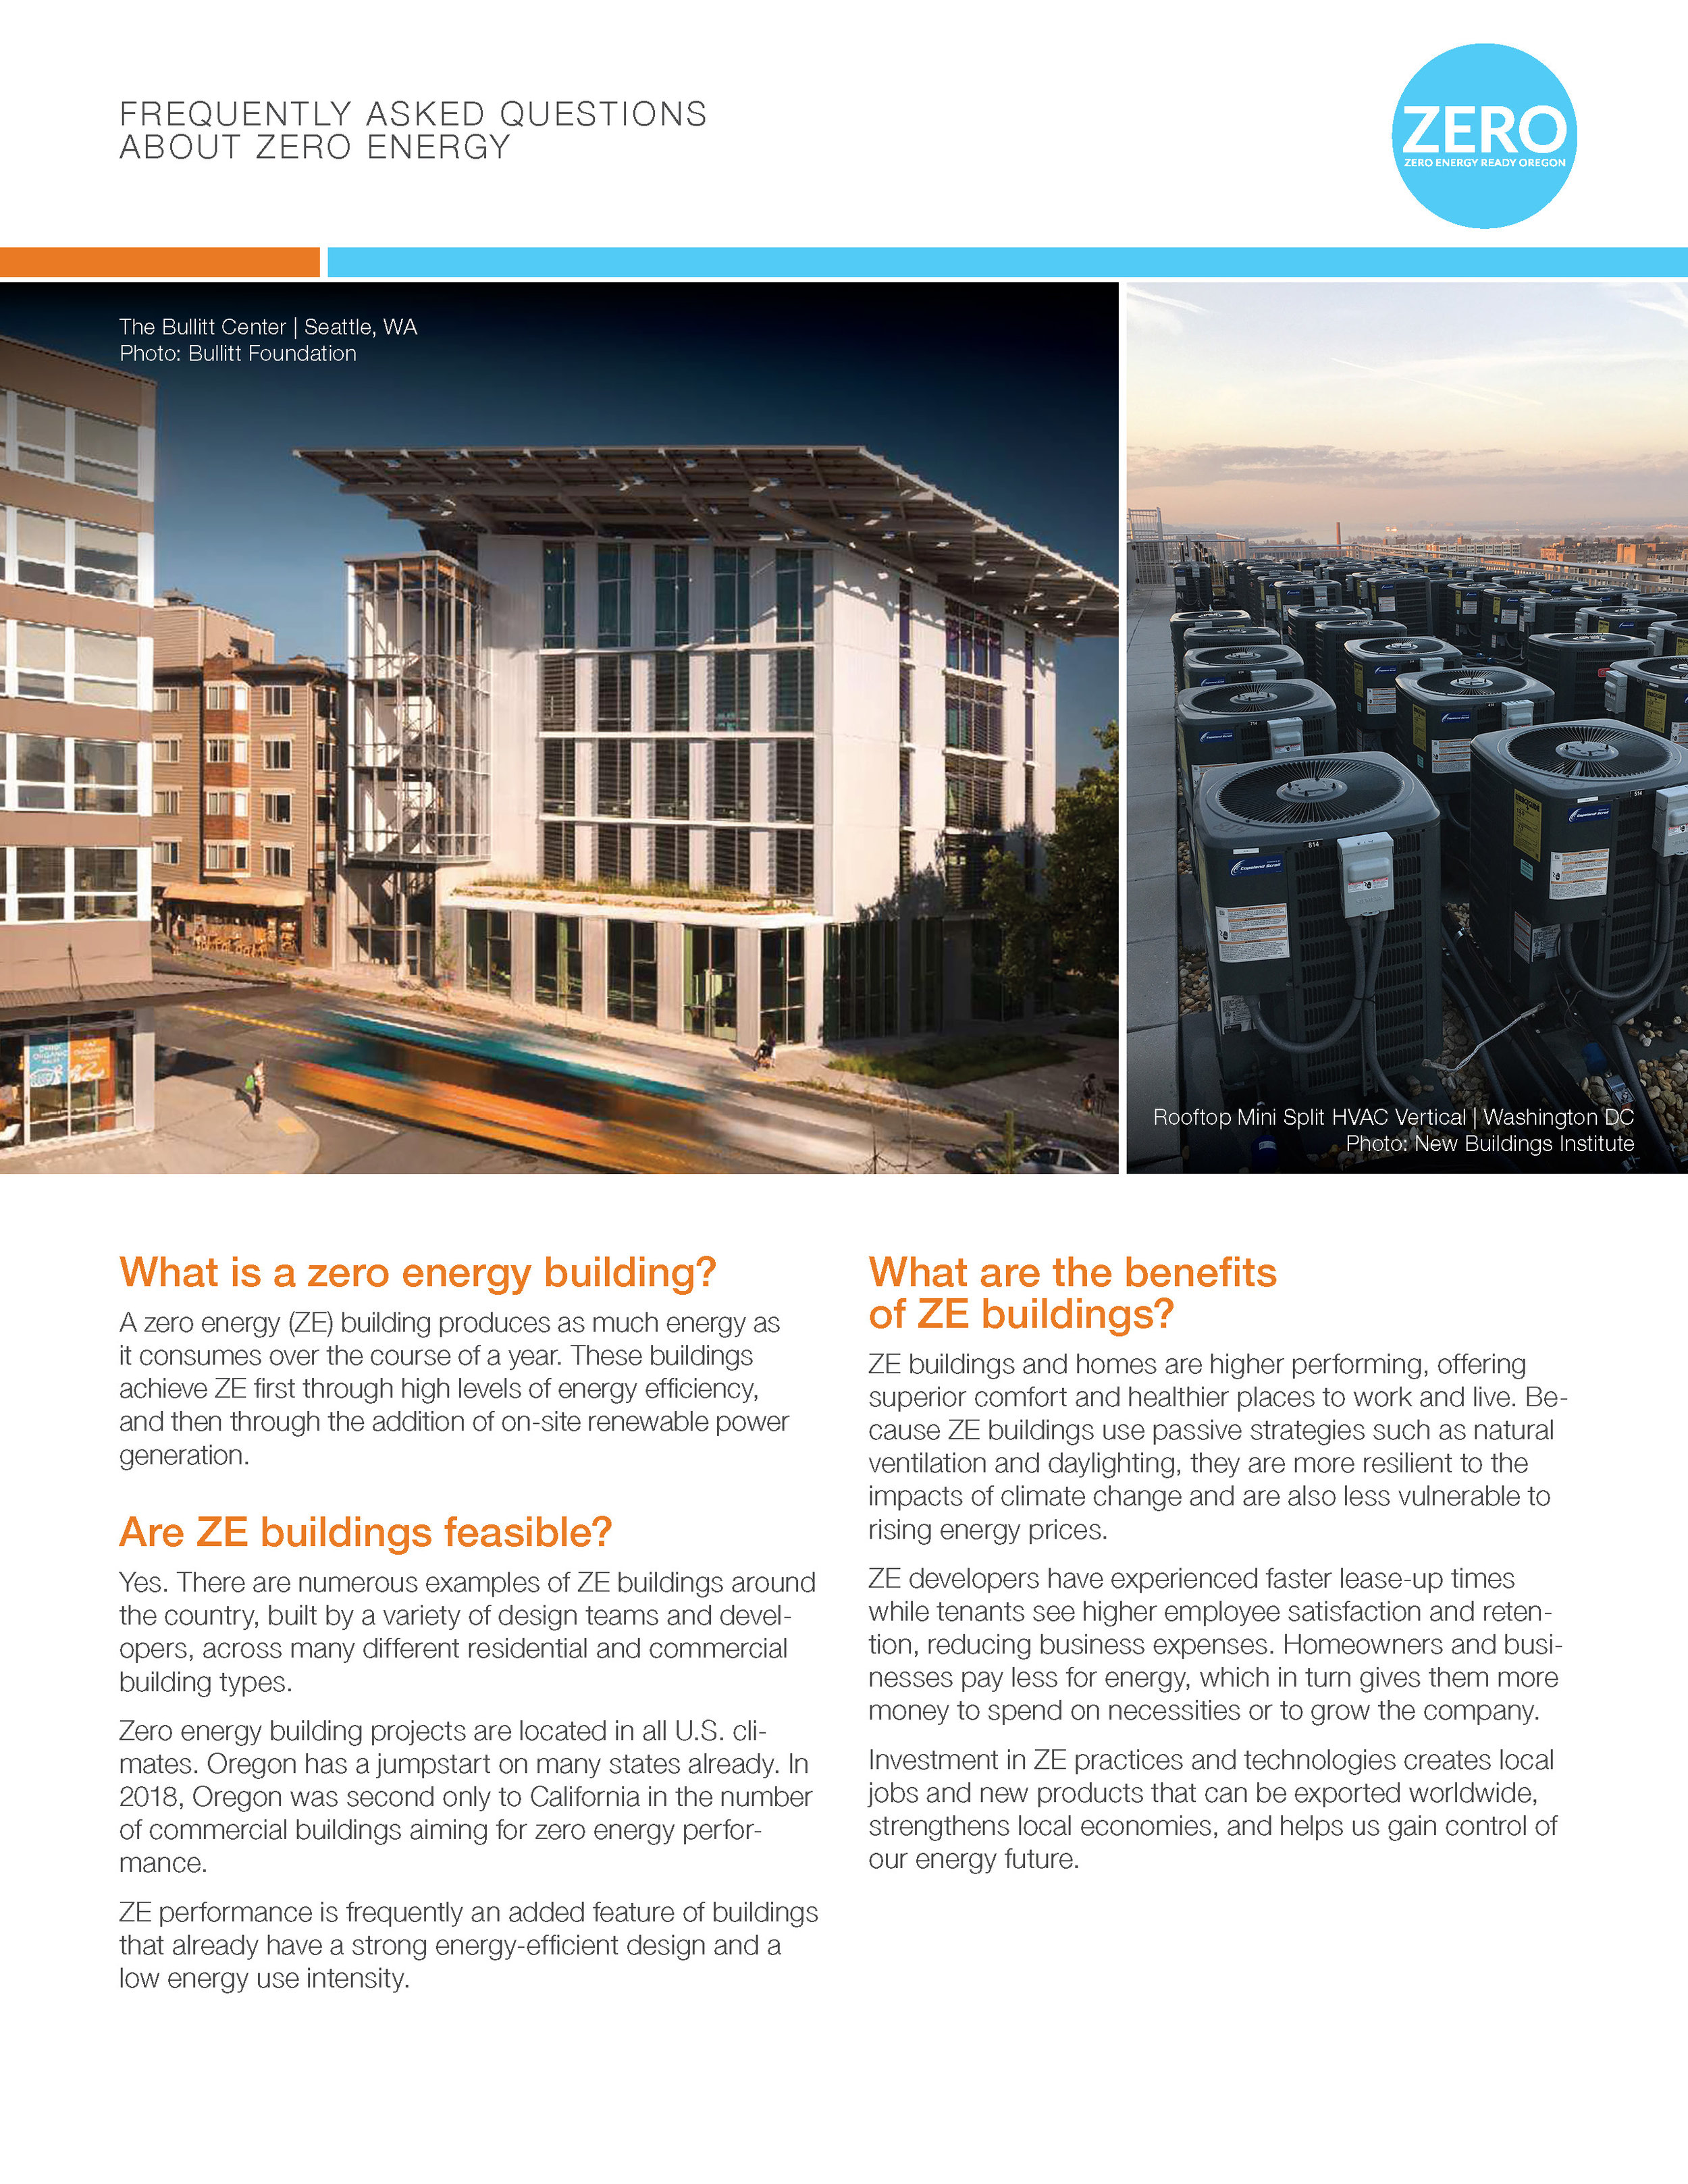 FAQ About Zero Energy  - Get answers to common questions that come up about zero energy buildings.